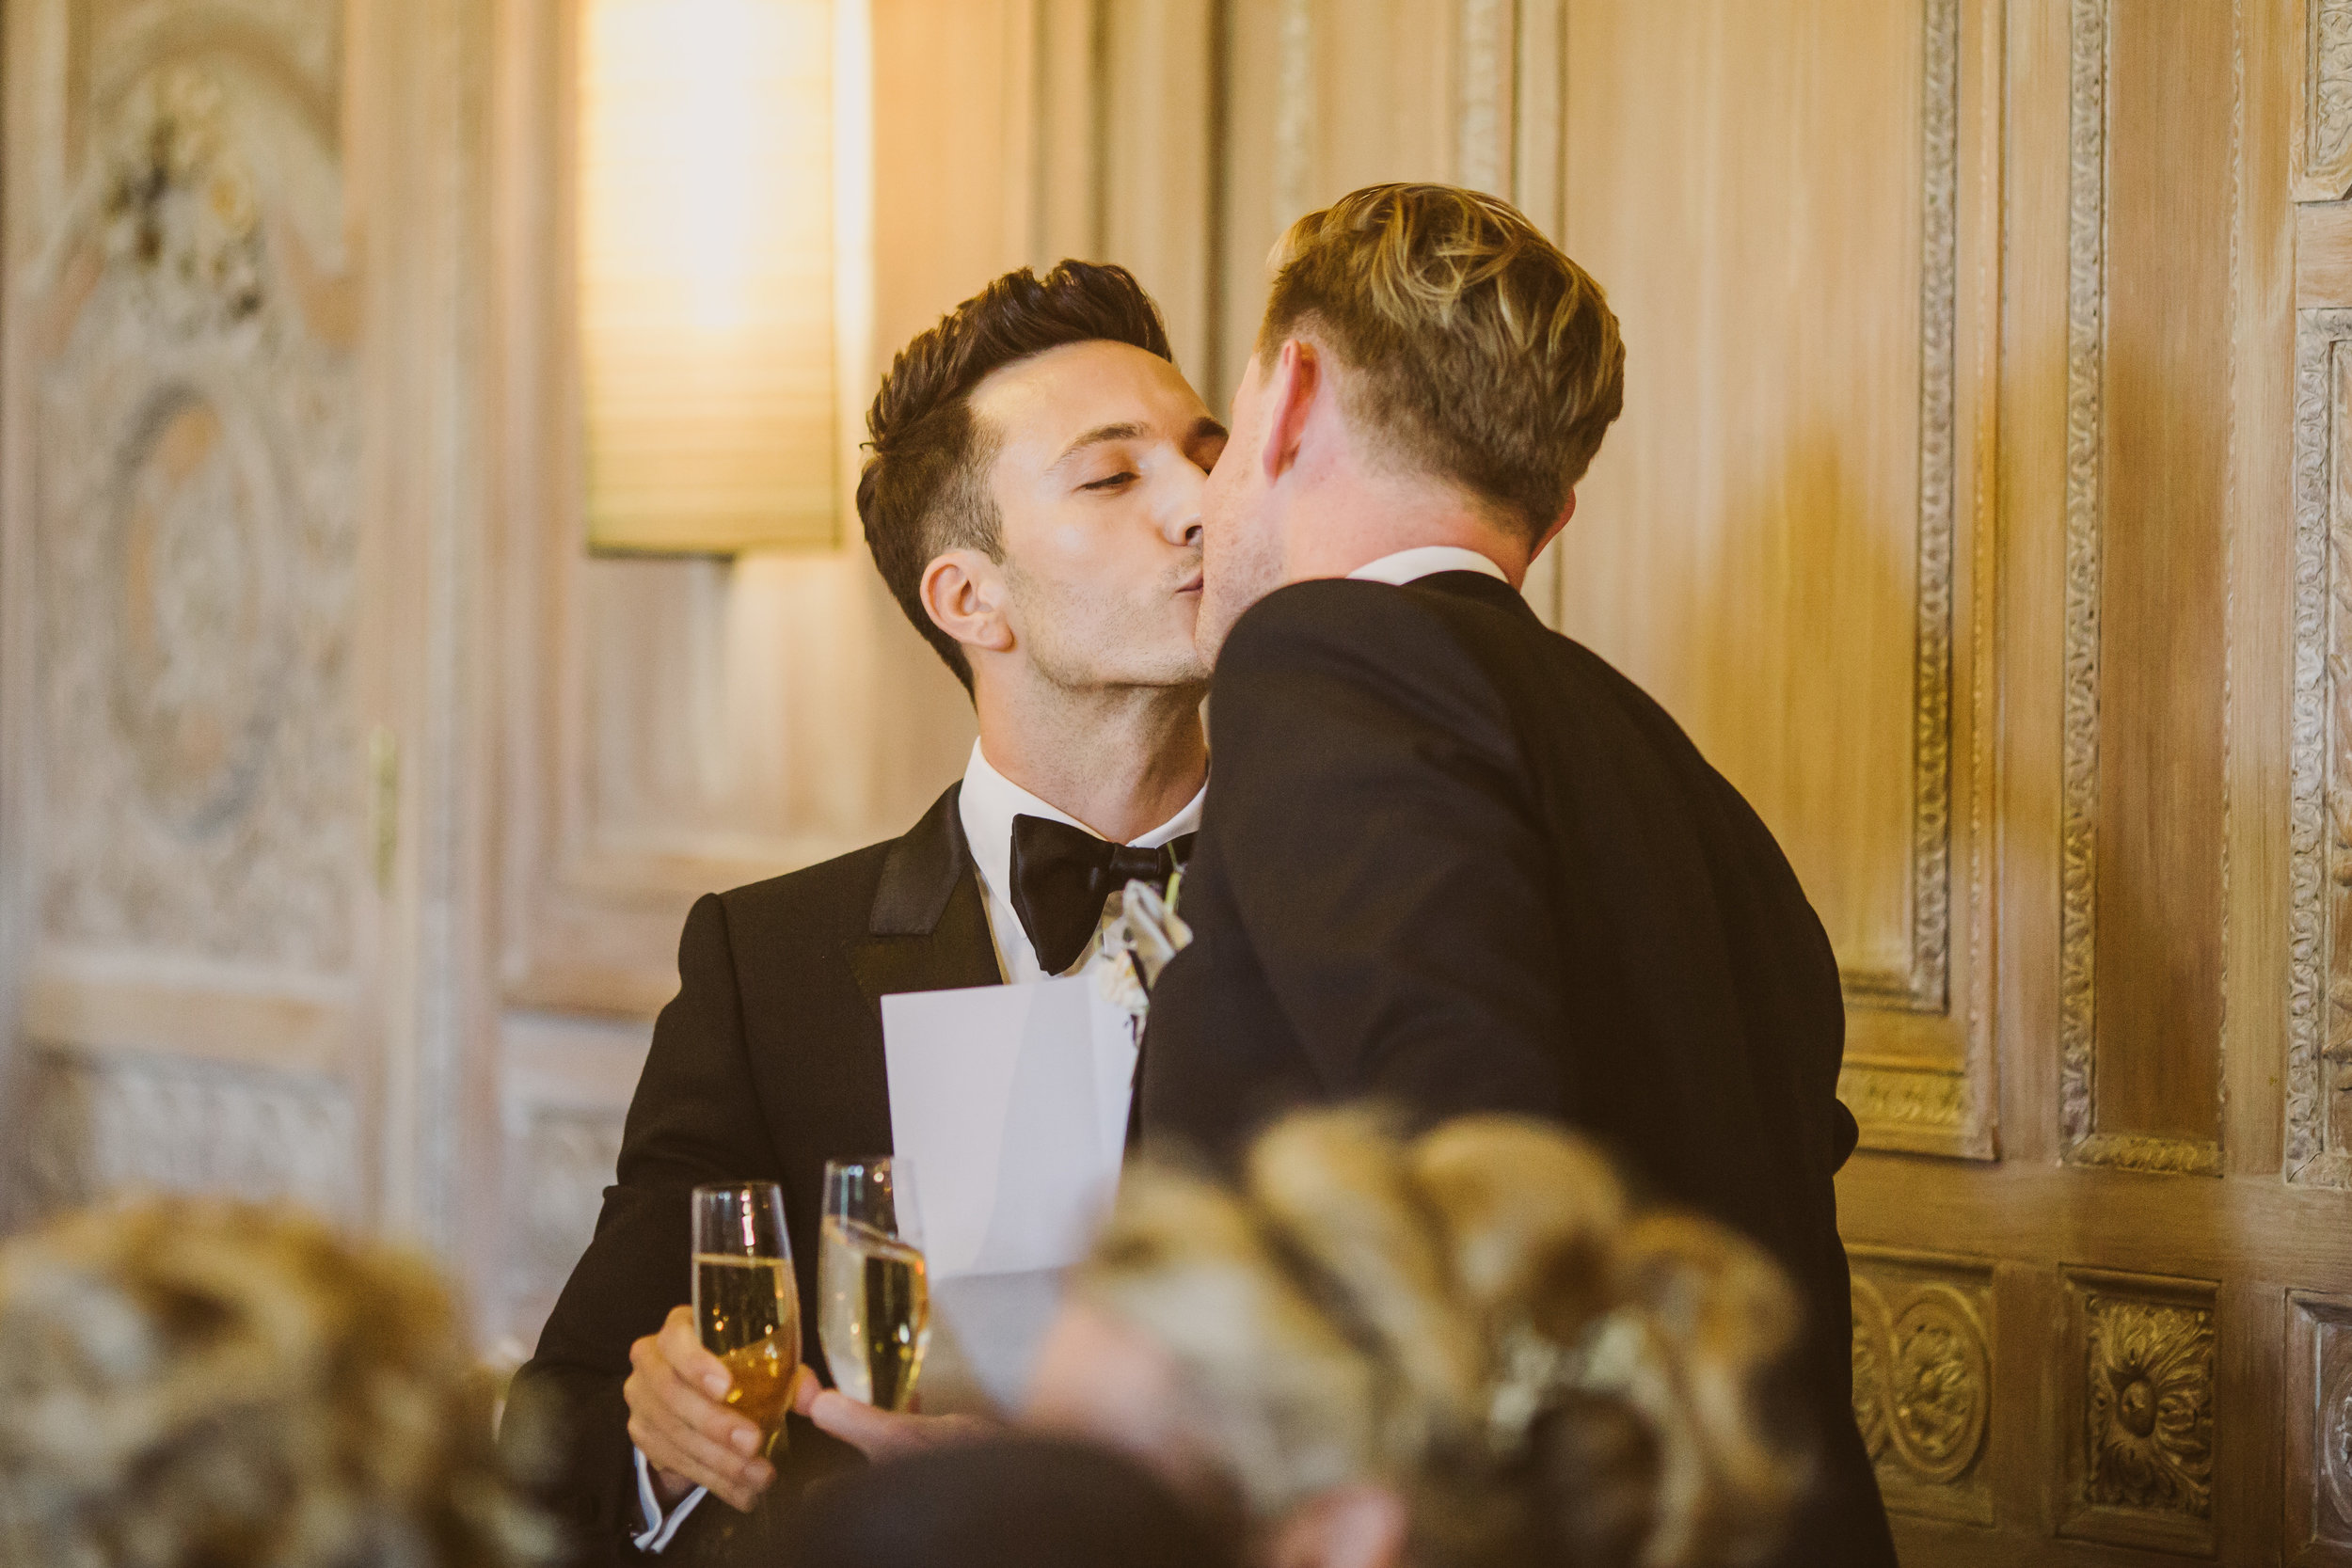 mr-theodore_same-sex-wedding29.jpg